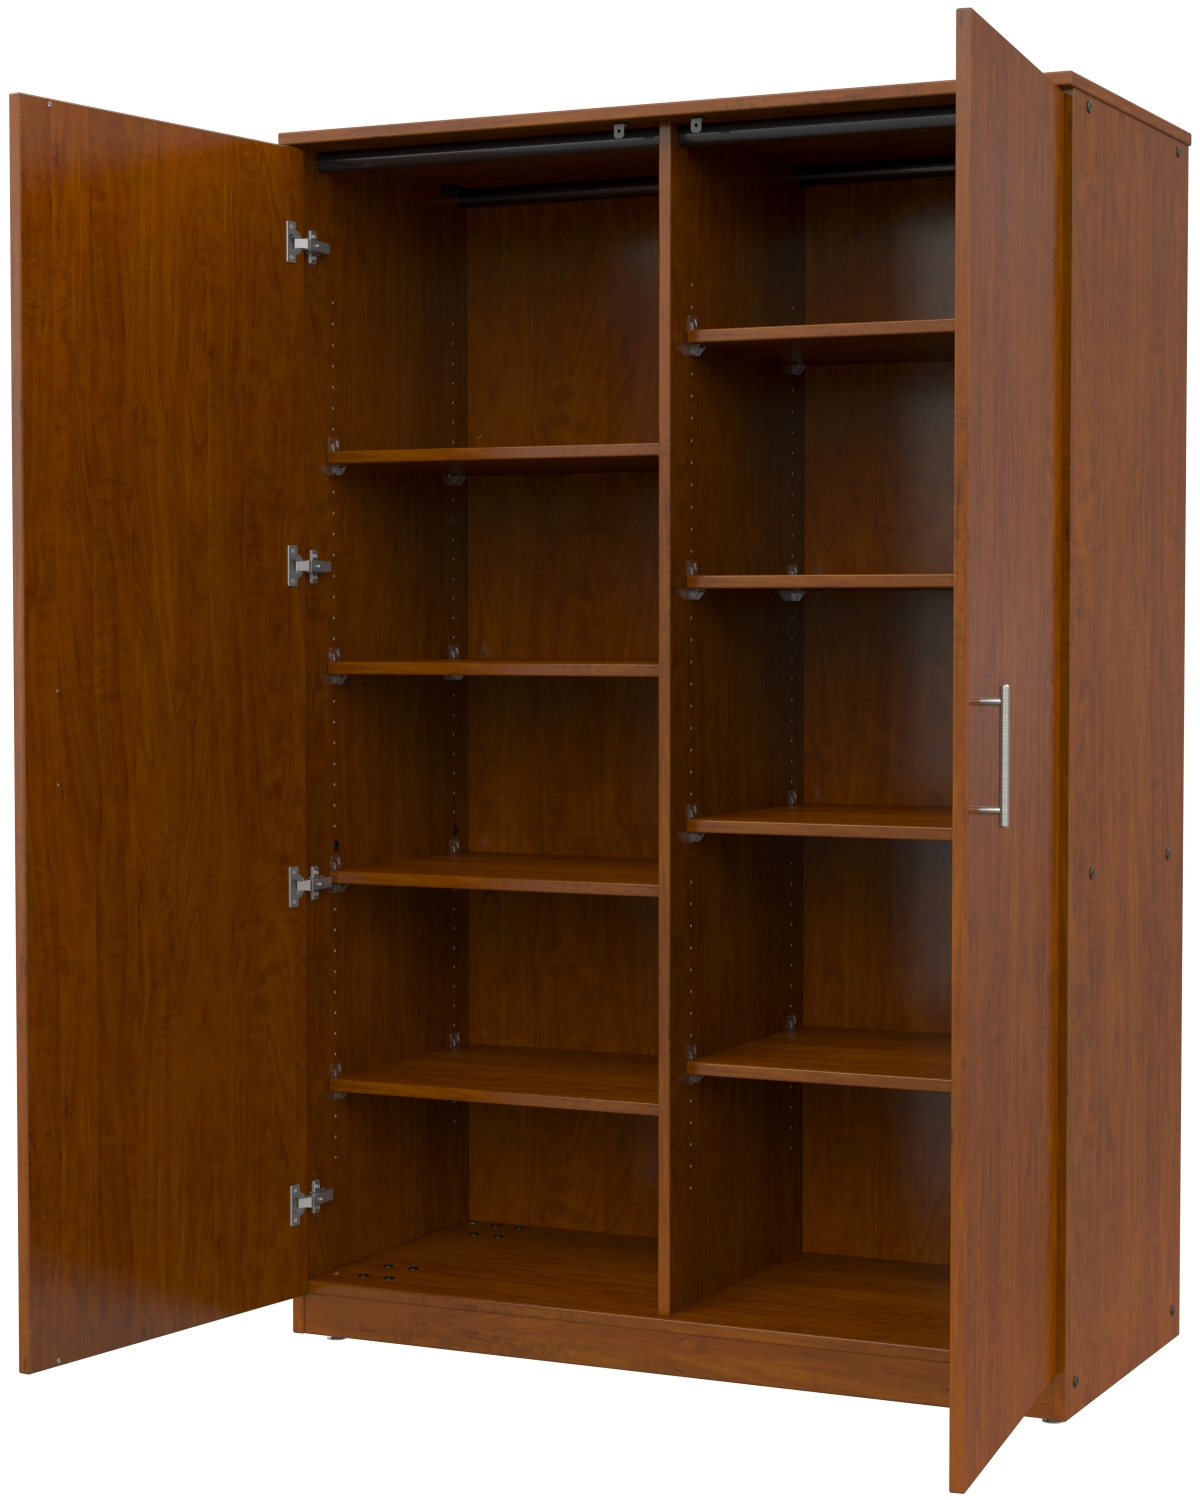 General Storage Cabinet W Divider Marco Group Inc